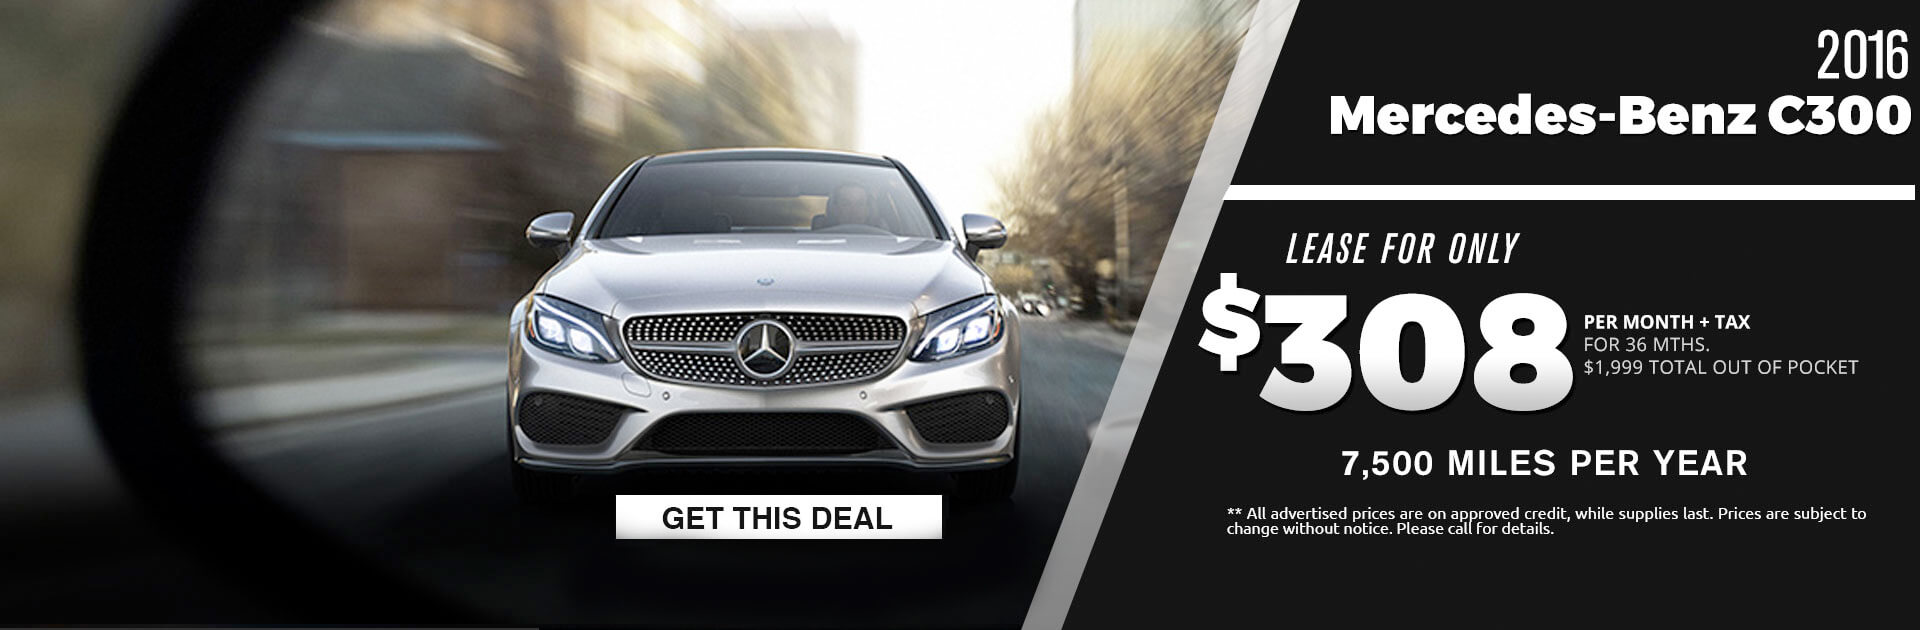 2016 Mercedes c-300 Lease